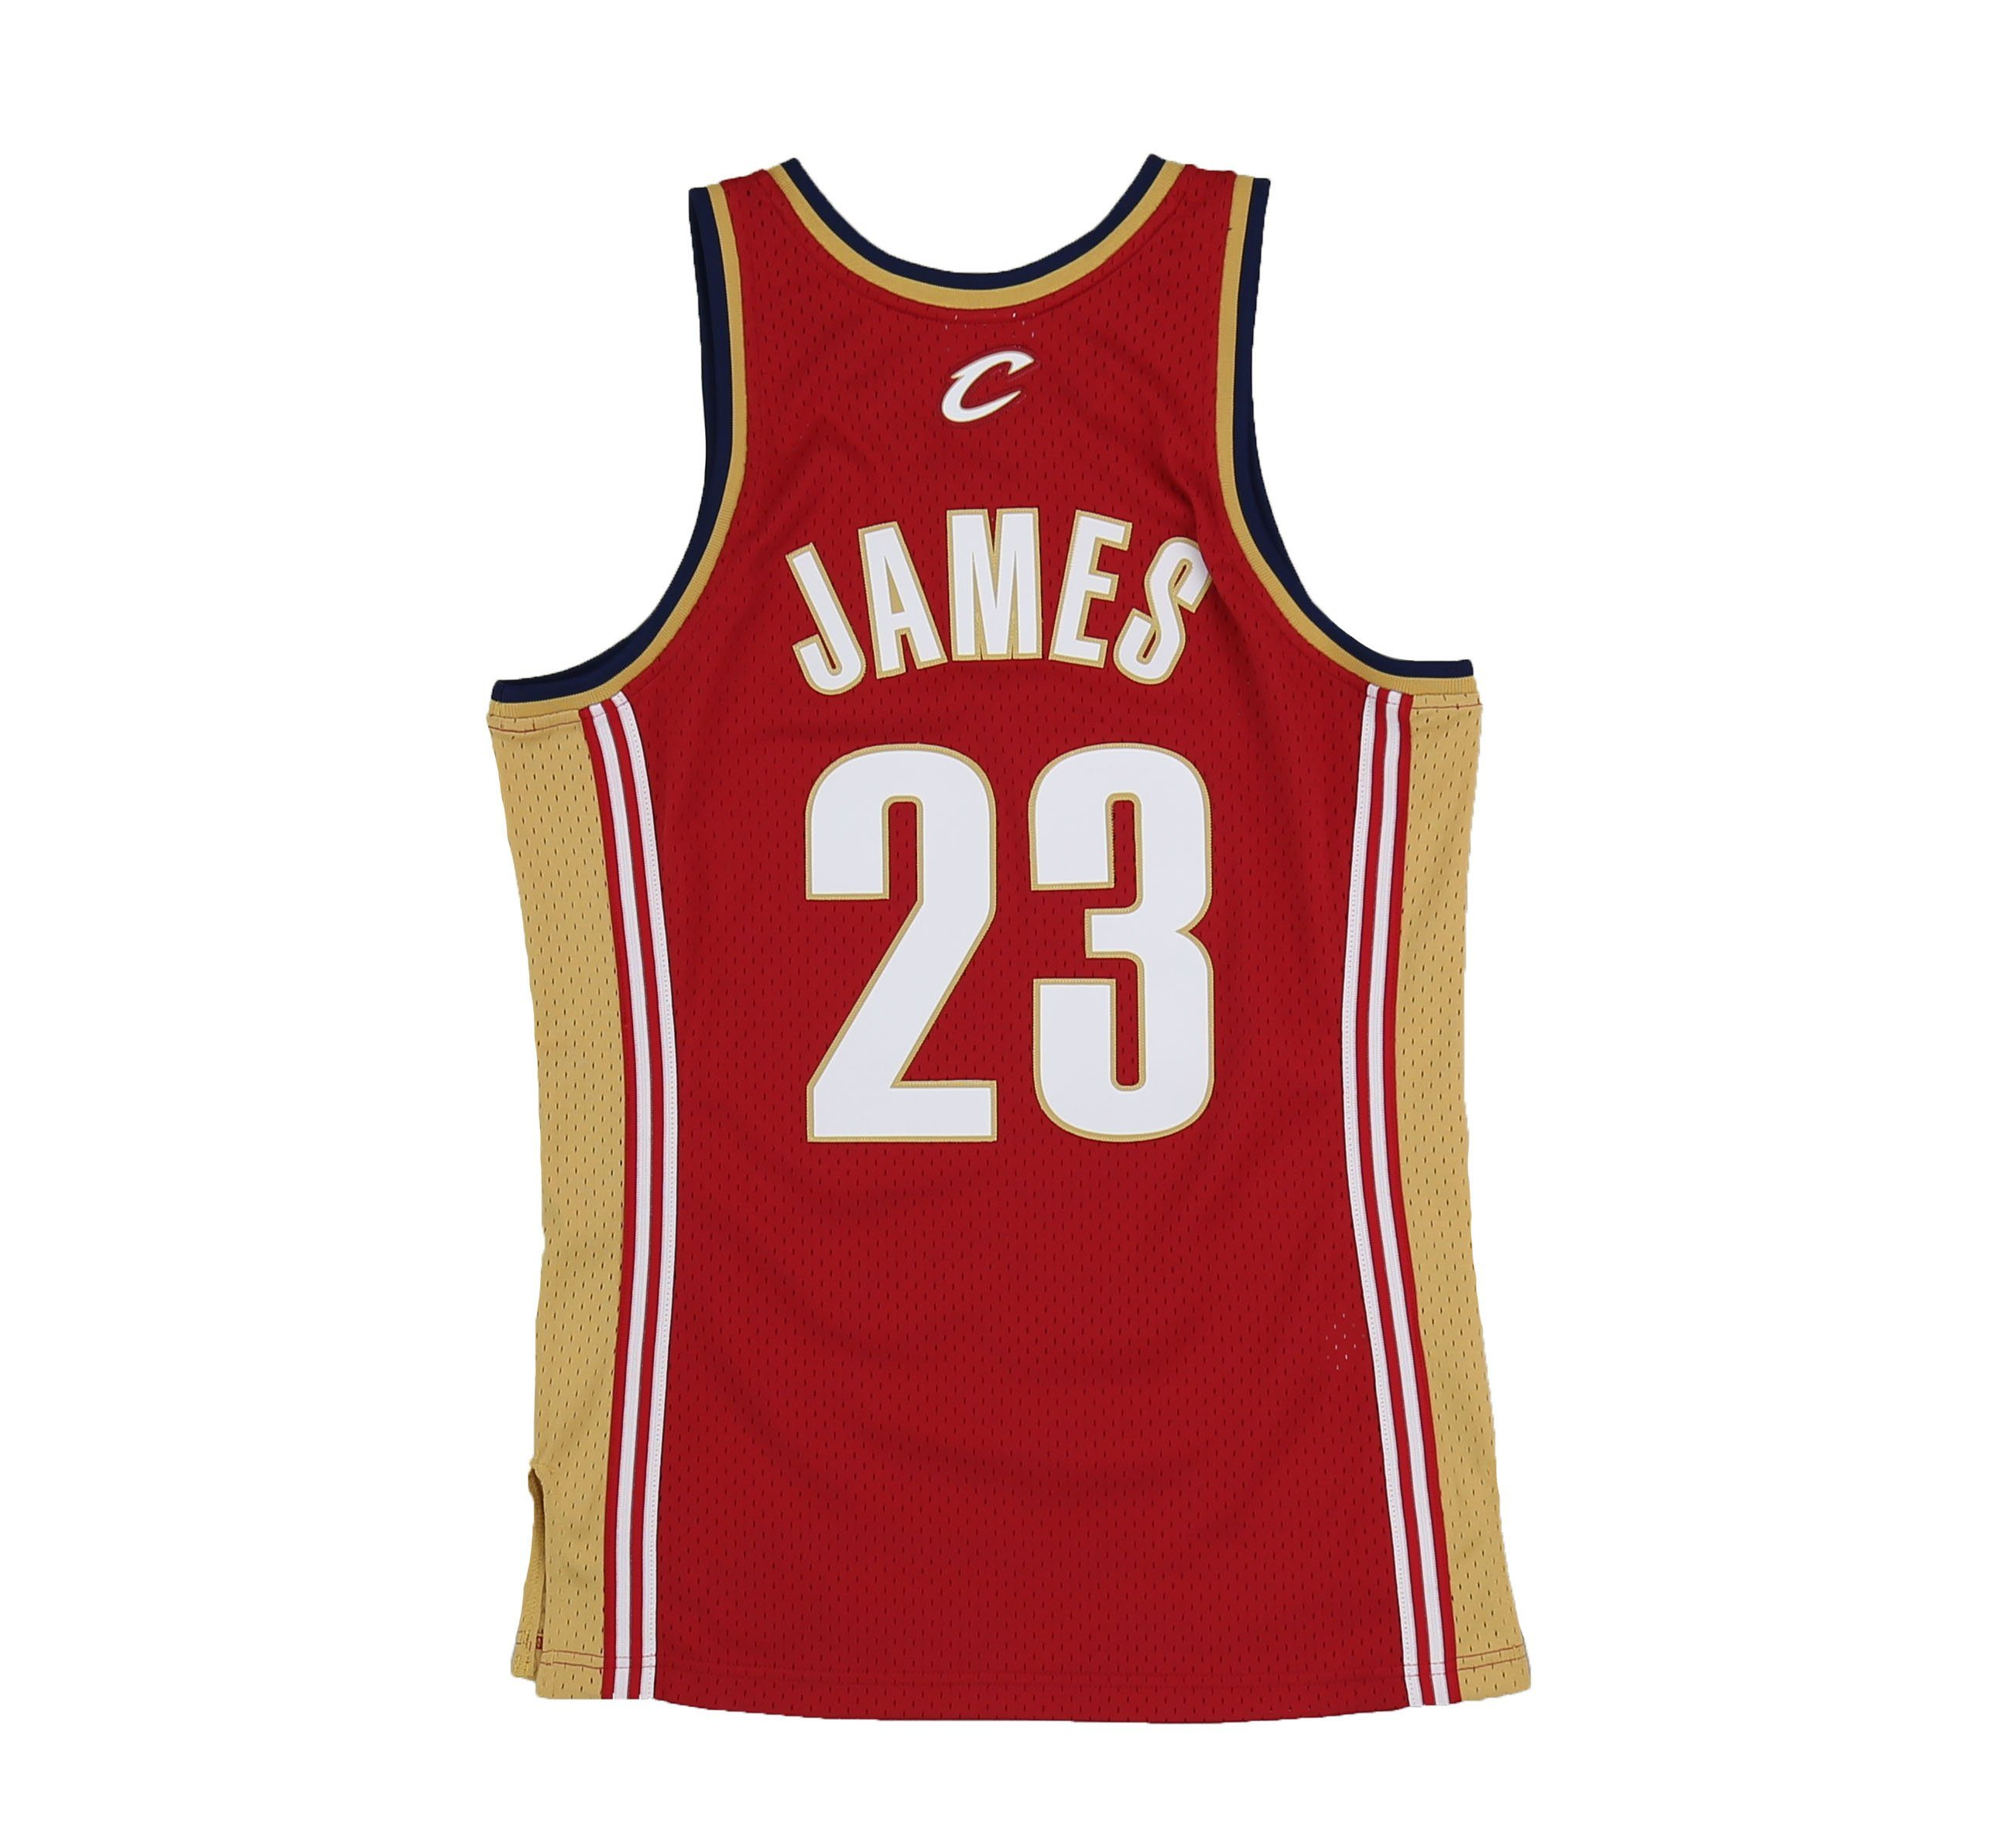 wholesale dealer 501d8 a1ee0 CLEVELAND CAVALIERS LEBRON JAMES #23 SWINGMAN JERSEY -